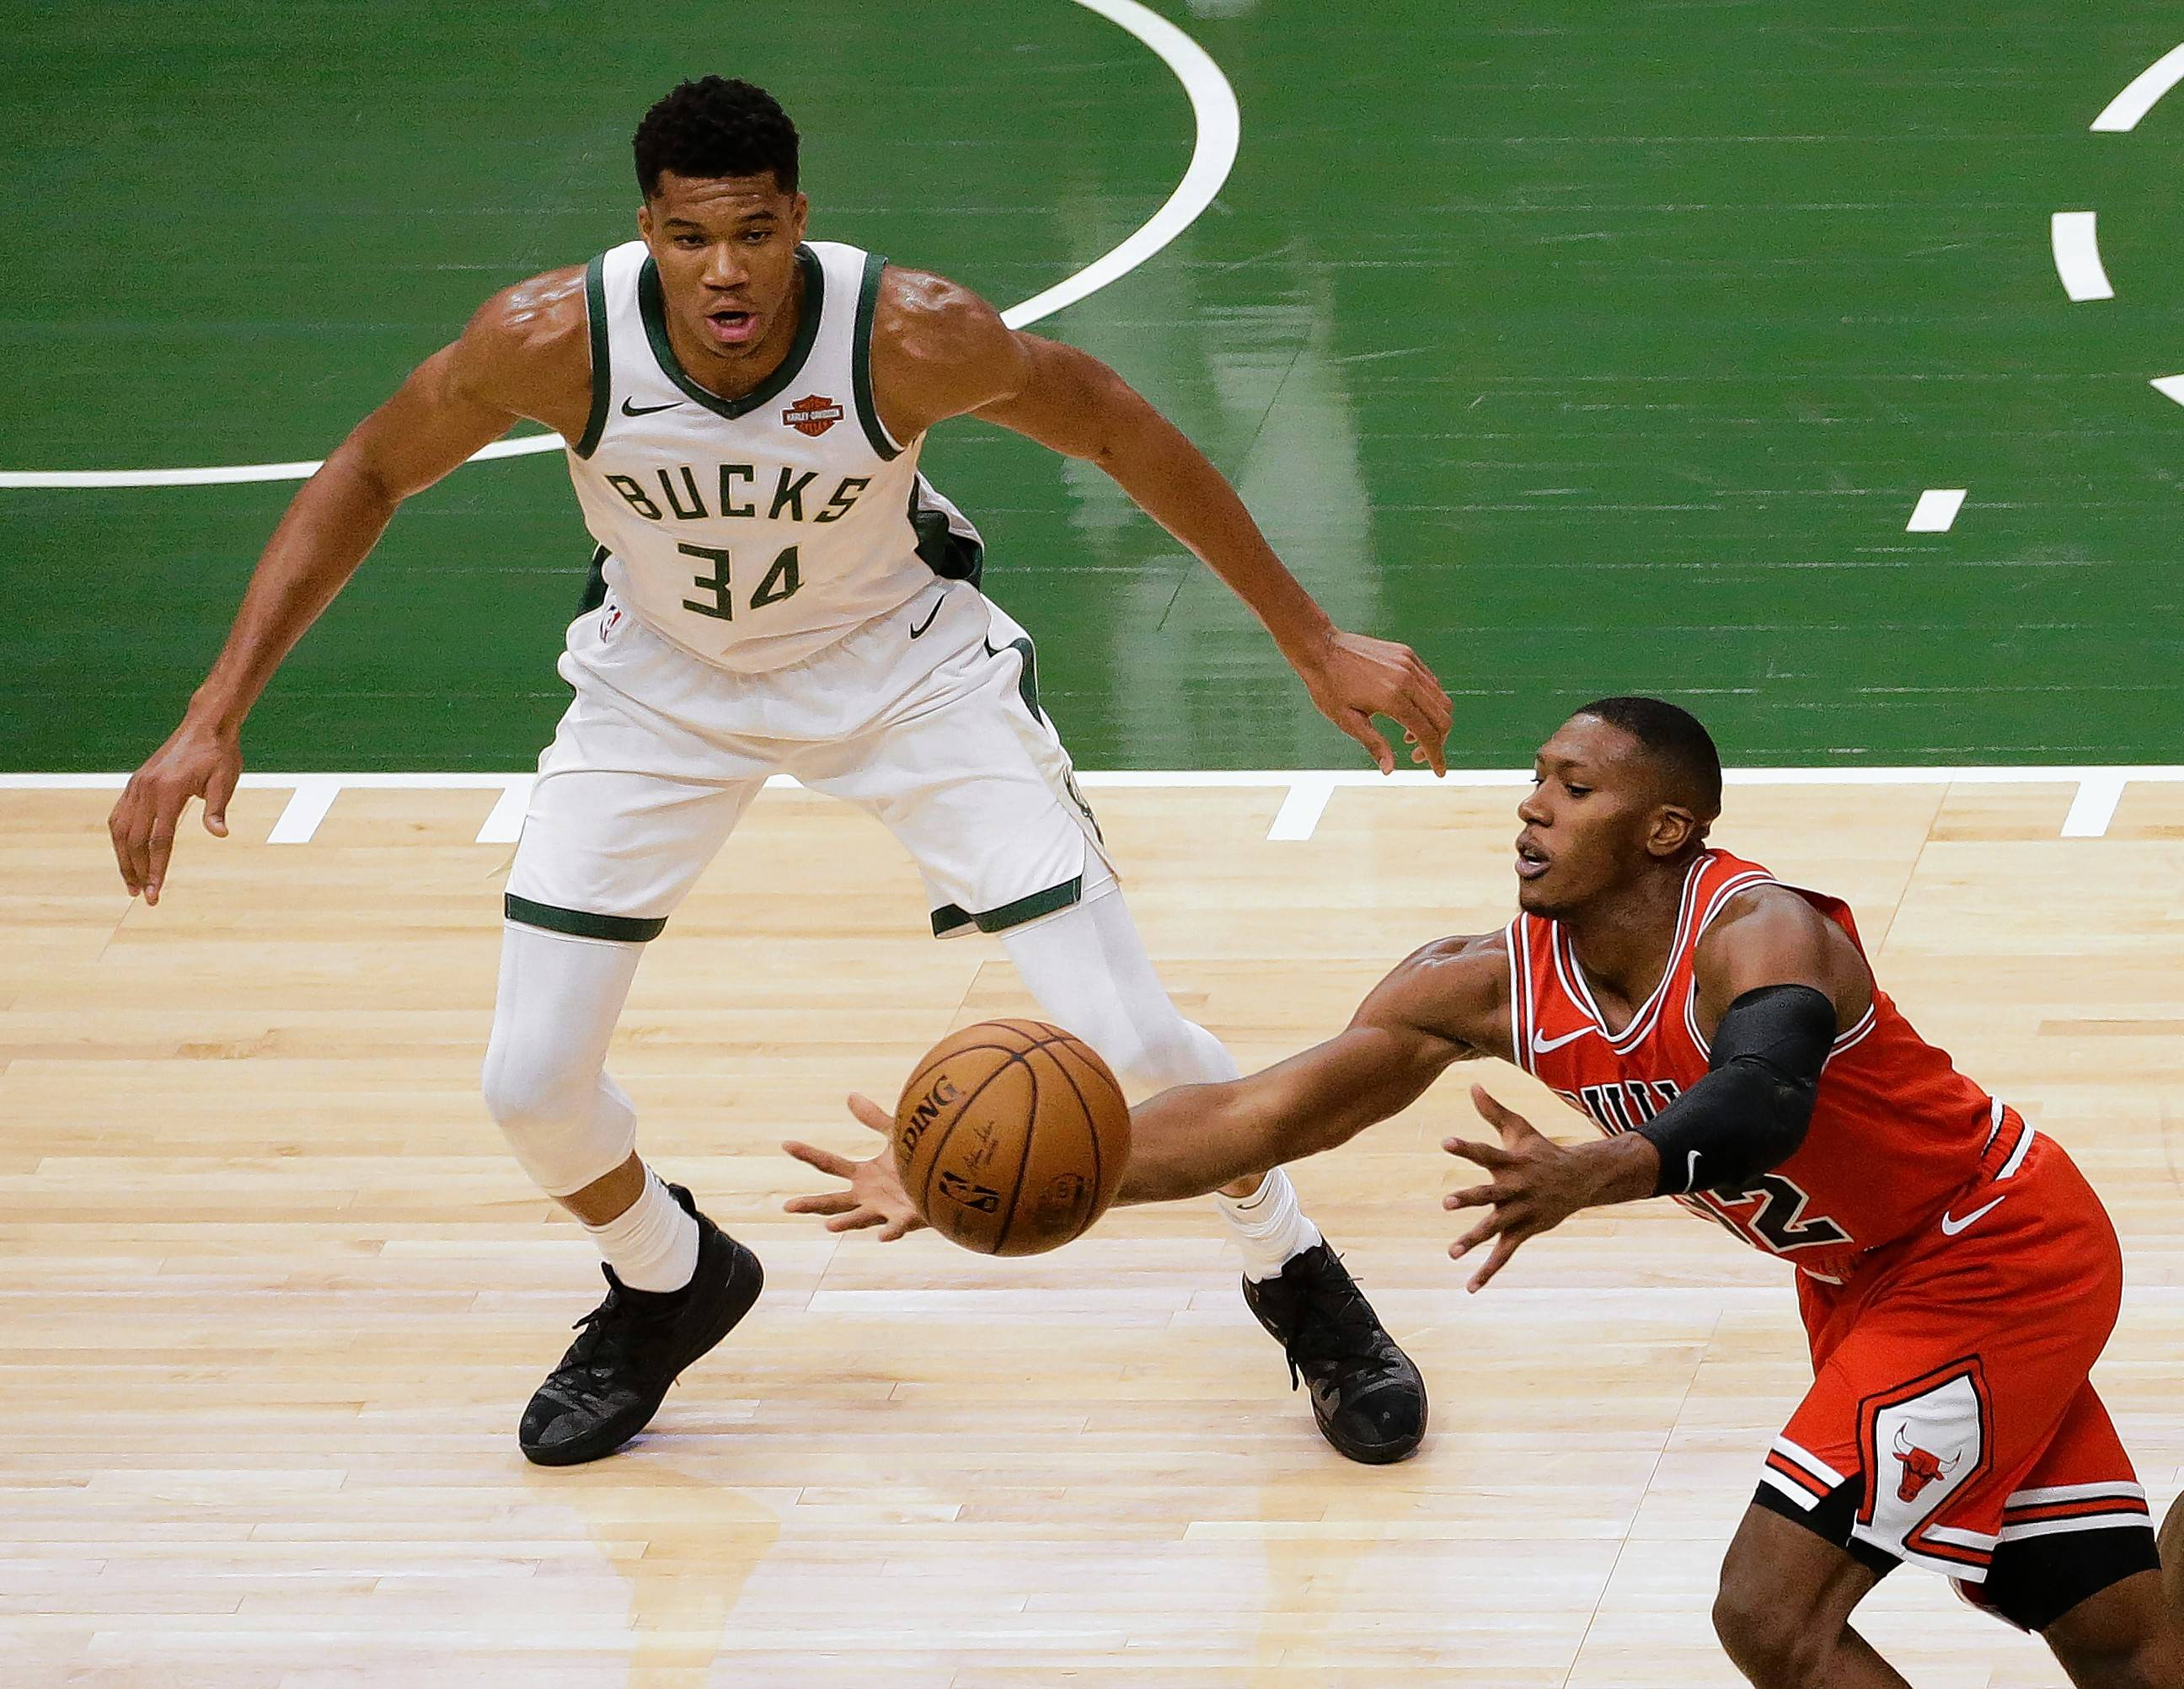 Kris Dunn attempts to gain possession of the ball in front of the Bucks' Giannis Antetokounmpo during a preseason game Oct. 3 in Milwaukee. Dunn returned to the court in Monday's game against Sacramento after having been out with knee sprains since Oct. 22